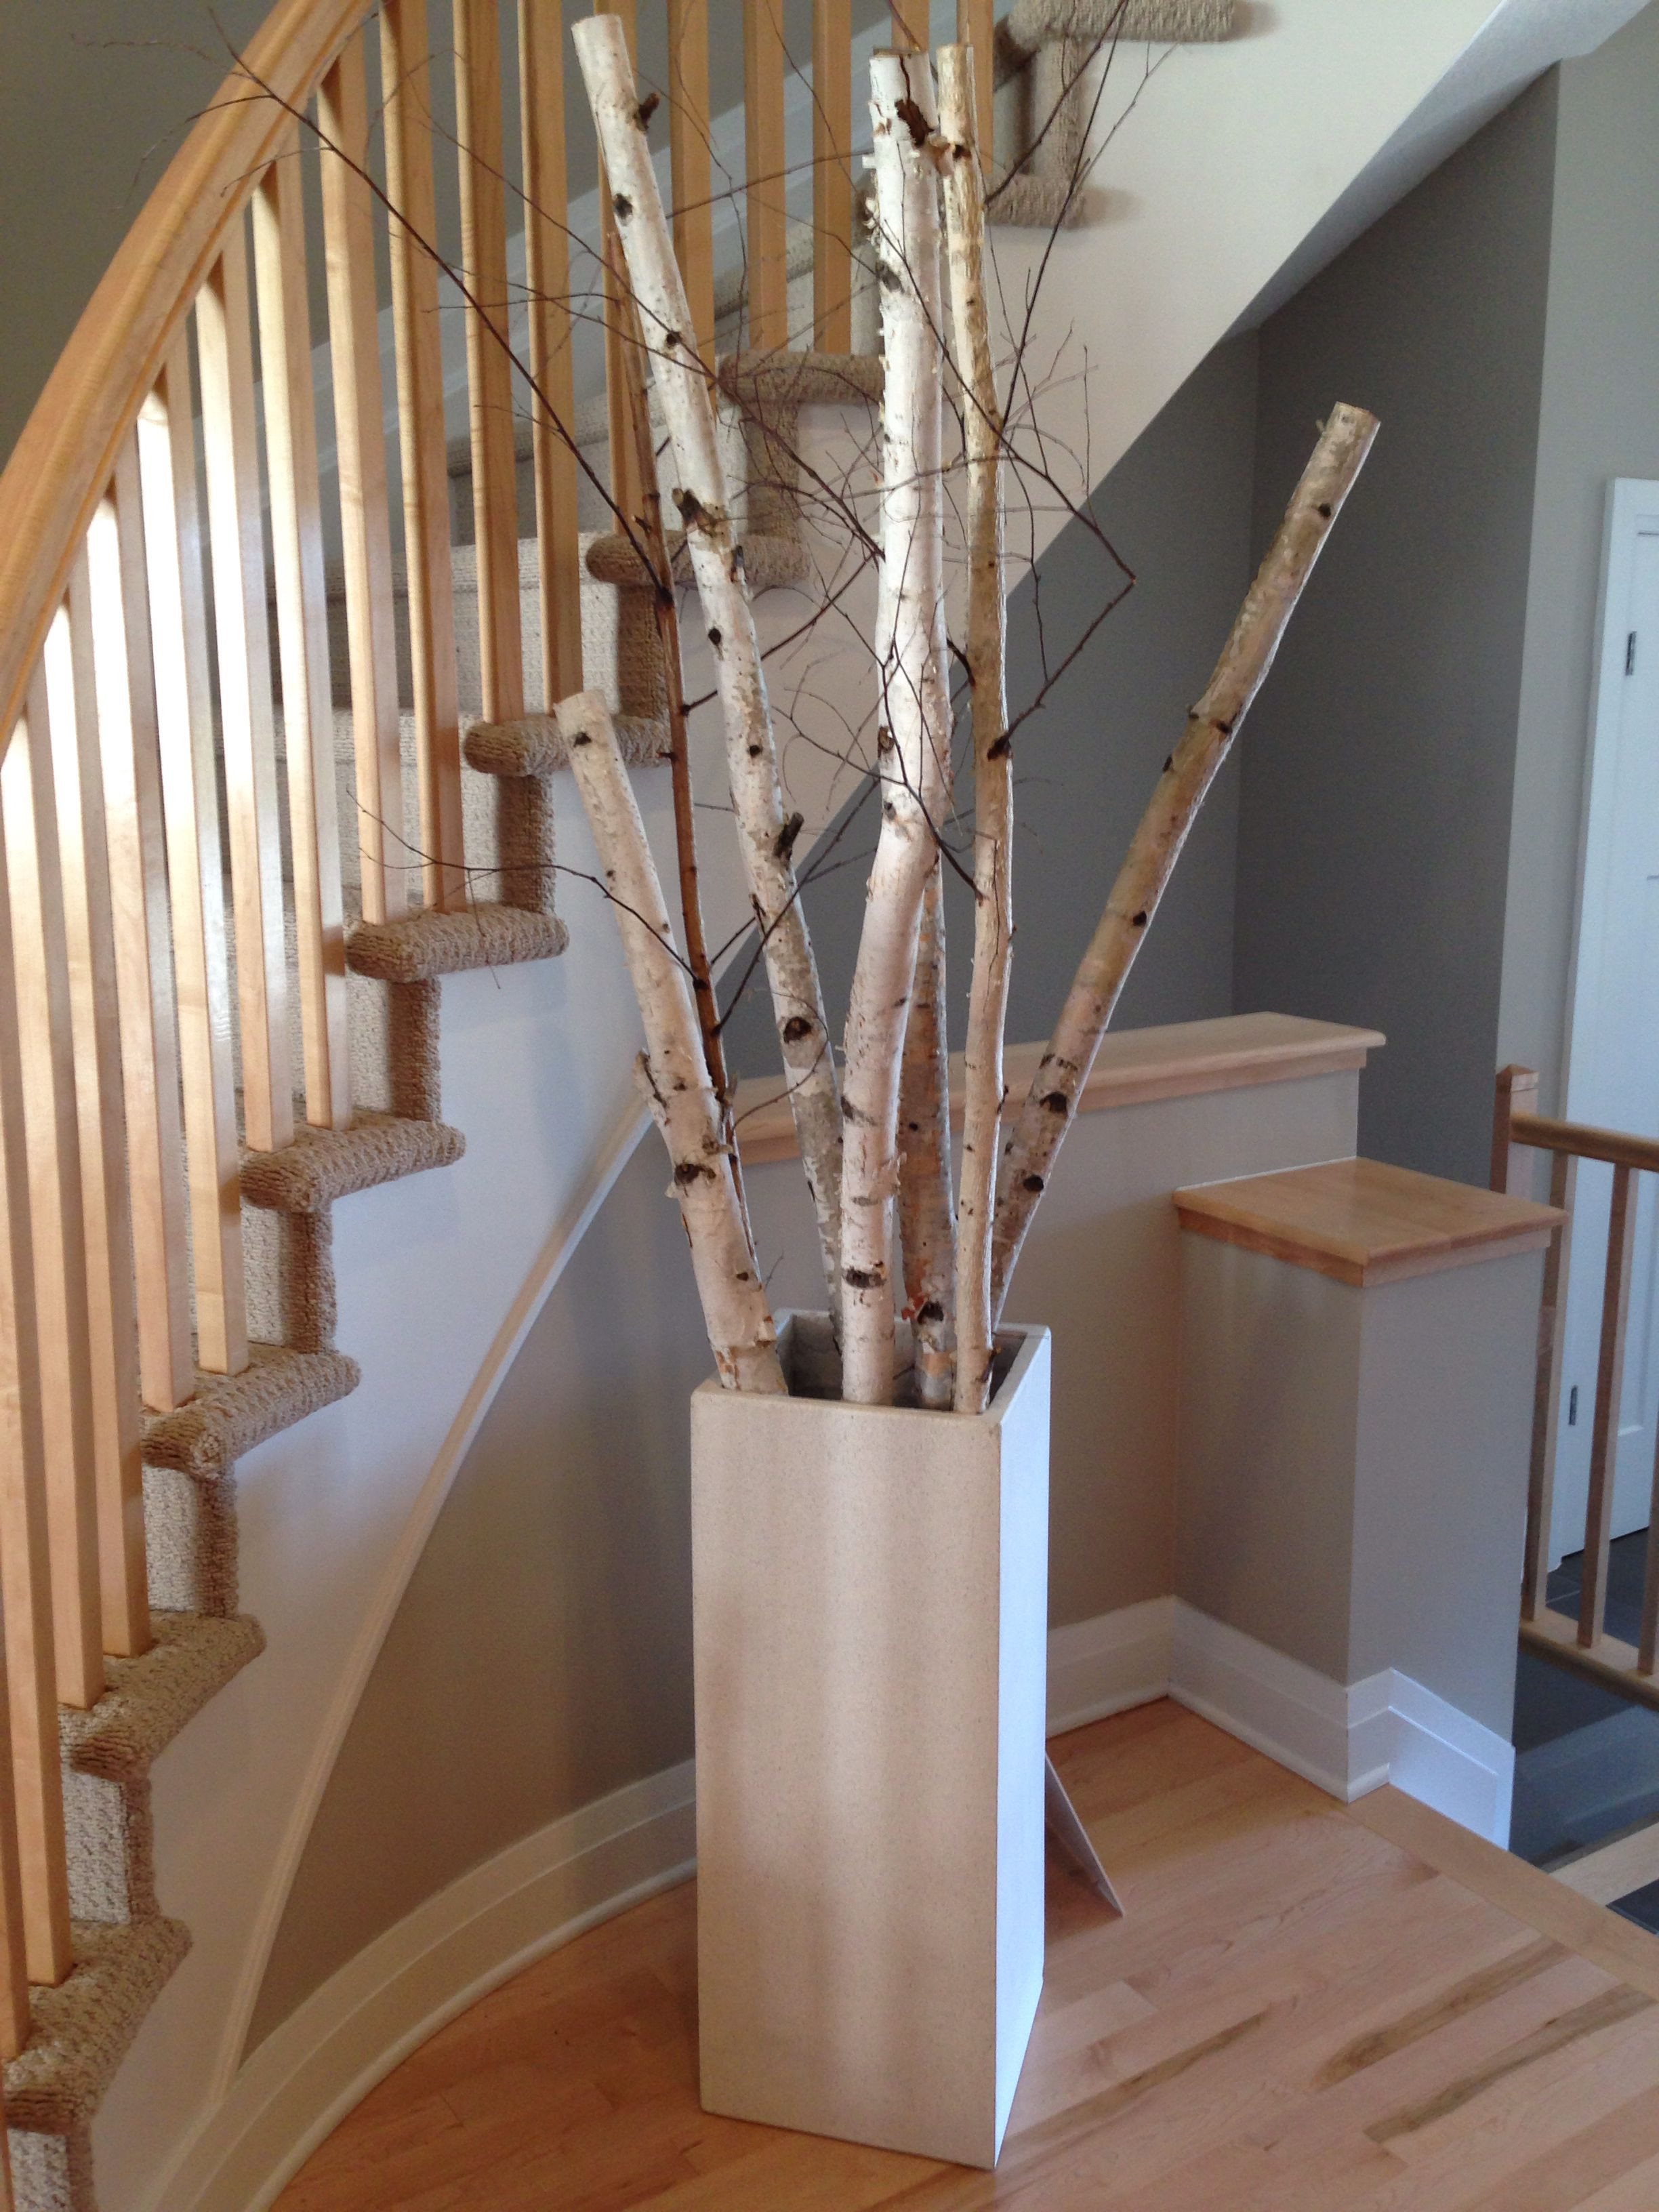 Large Indoor Floor Vases Of Interesting Grouping Of Birch Tree Branches for the Home Regarding Interesting Grouping Of Birch Tree Branches